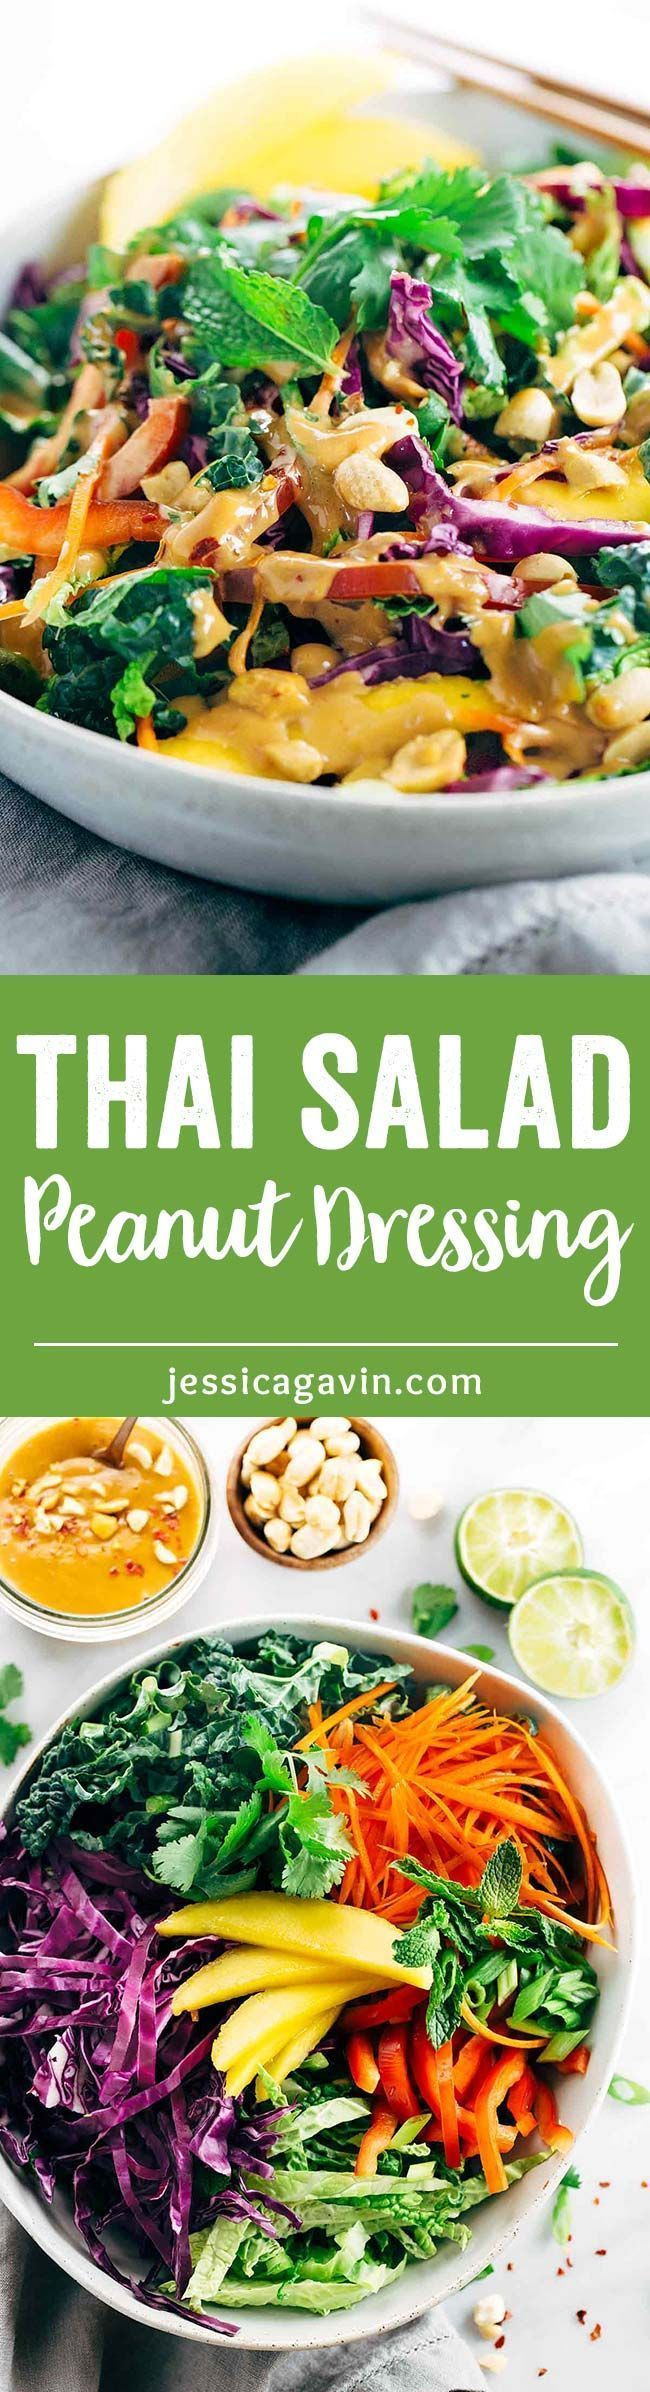 Crunchy Thai Salad Recipe with Creamy Peanut Dressing - Each bite is packs a powerhouse of fresh superfoods all in one irresistible bowl   http://jessicagavin.com